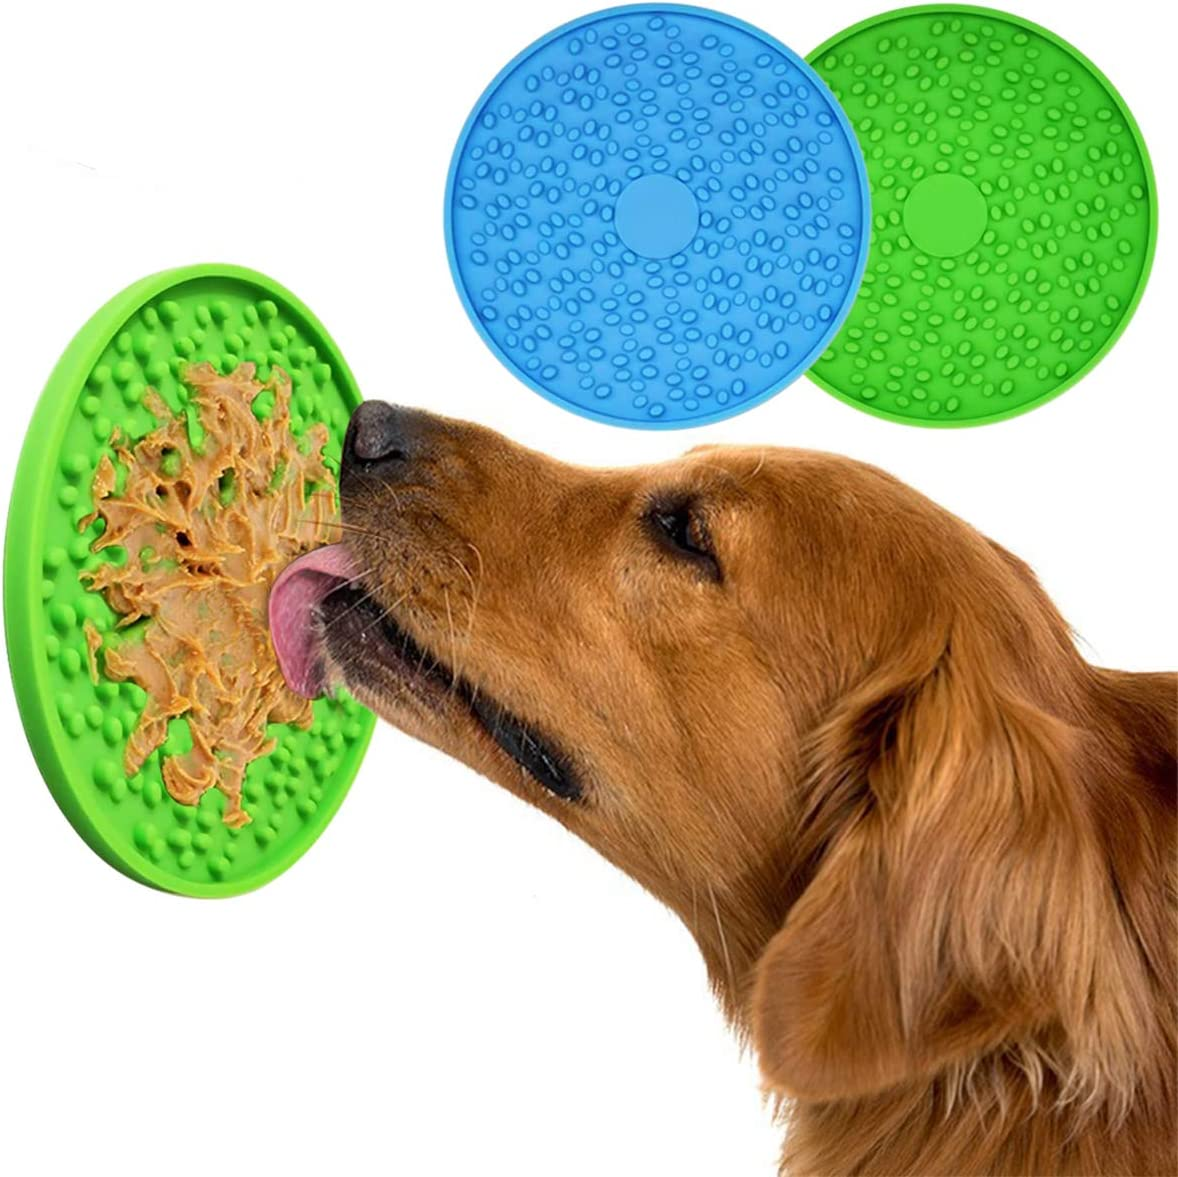 MR LION Pad for Dog Lick 2PCS - Dog Washing Distraction Device, Slow Eating Dog Mat with Super Suction for Pet Bathing, Grooming, and Dog Training -2 Pack (Blue & Green)